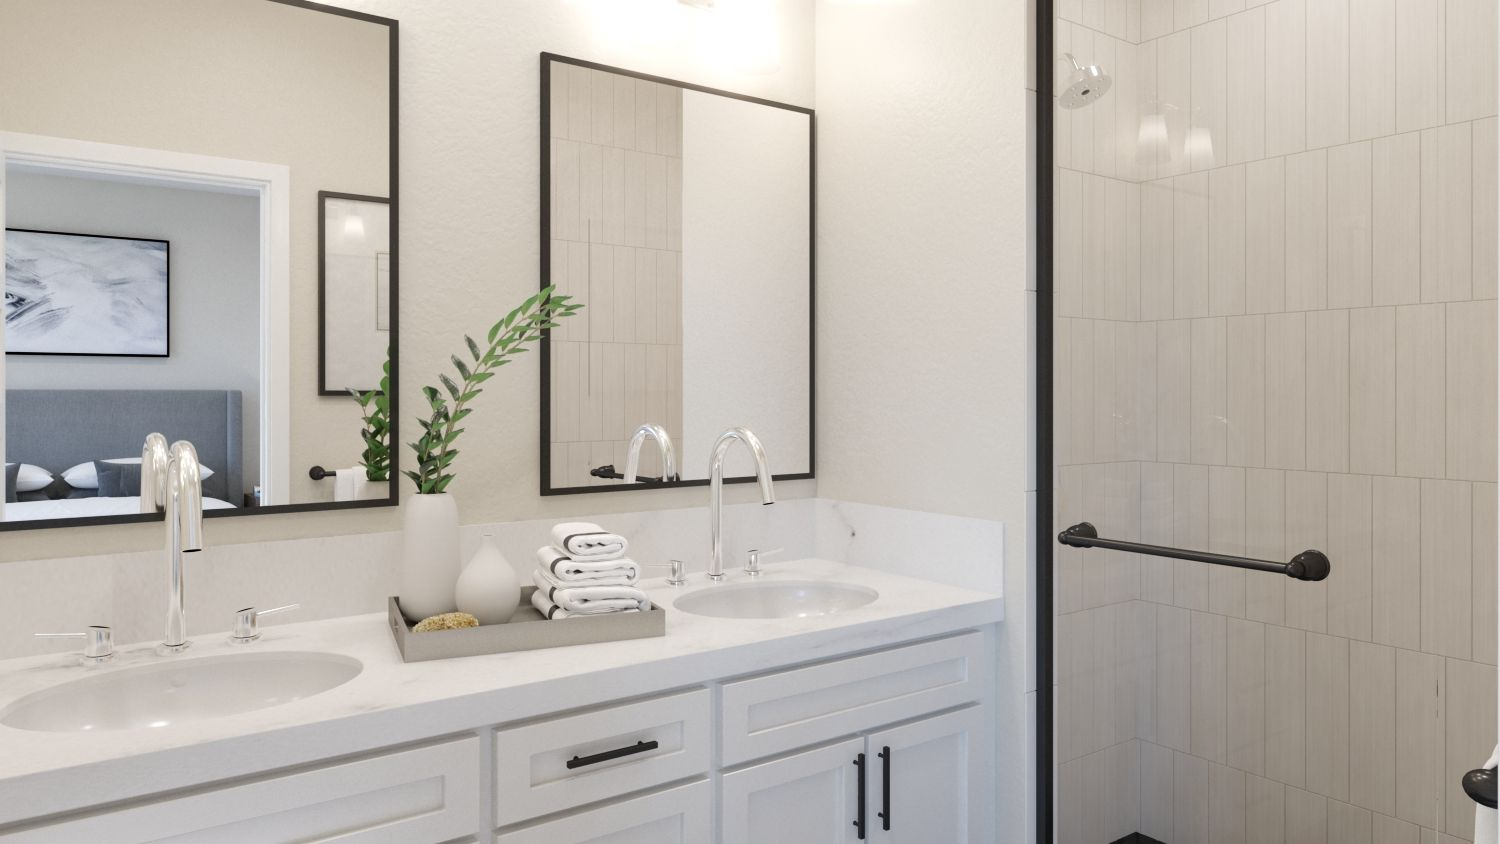 Bathroom featured in the Plan 2 By Melia in Orange County, CA